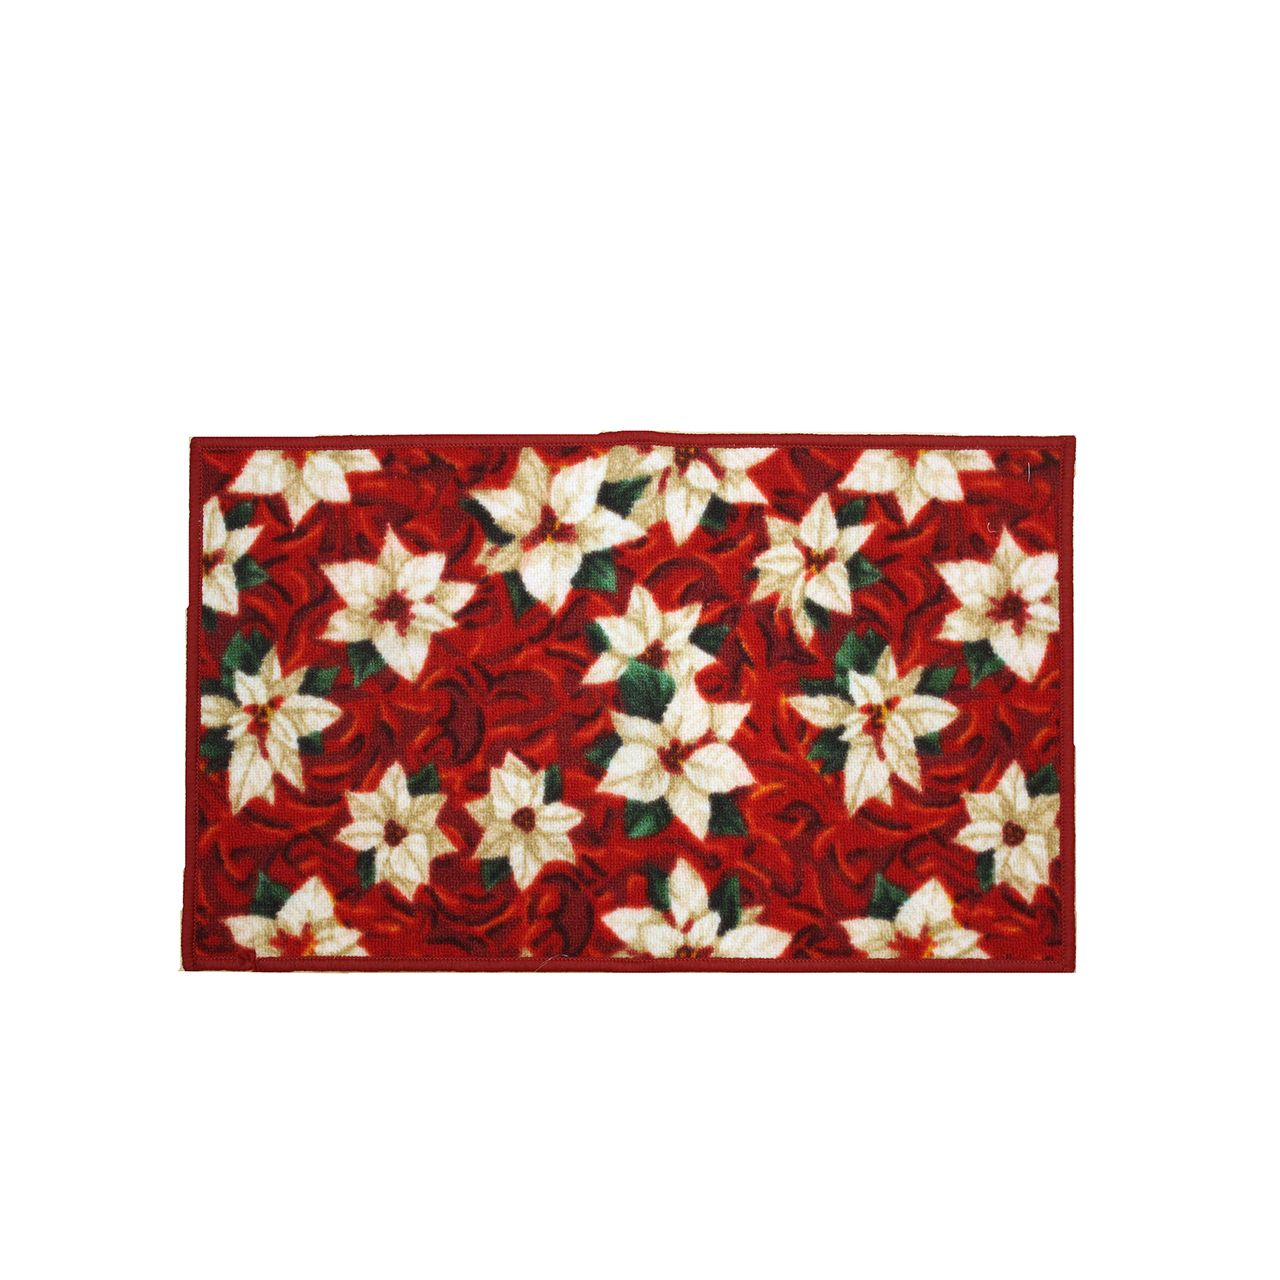 Pin On Home Essentials Rugs Carpets